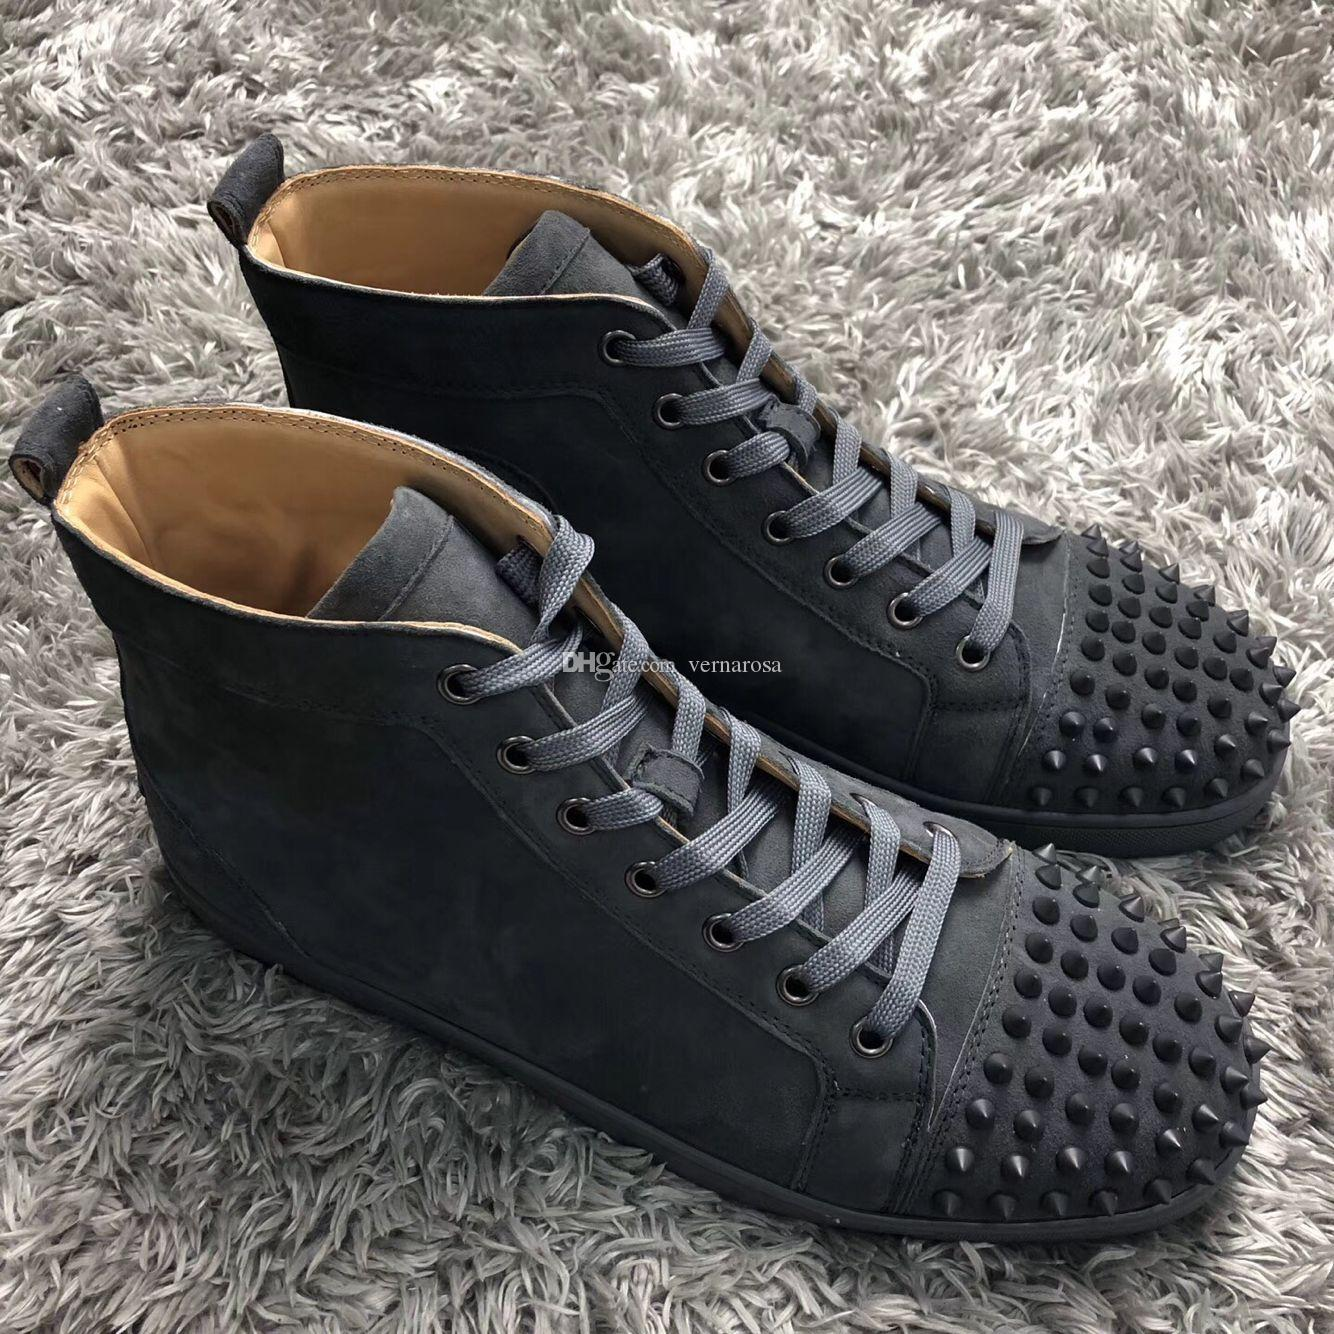 734d9fca High Top Spikes Red Bottom Sneaker Shoes For Men,Women Sport Luxe Designer Red  Sole Casual High Quality Grey Suede Leather Outdoor Walking Summer Shoes  Best ...